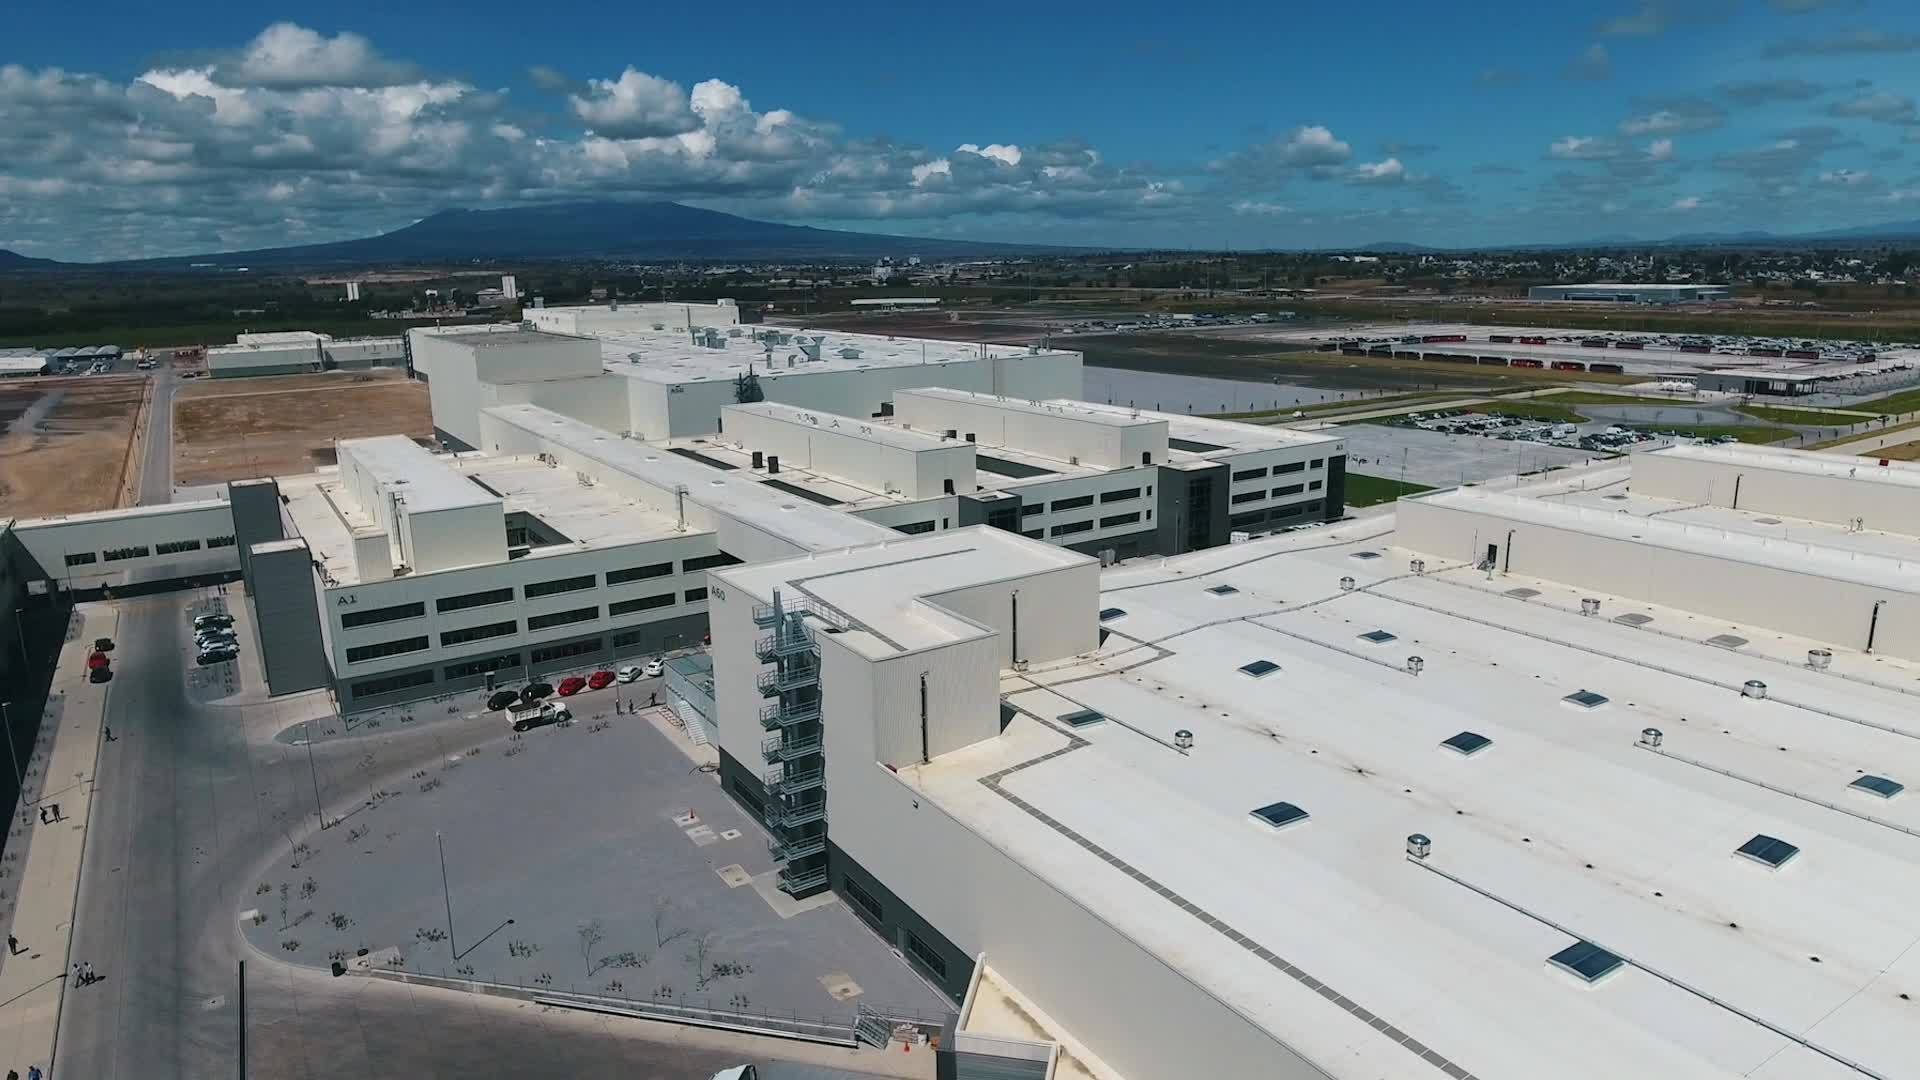 Construction work of the new Audi plant in Mexico